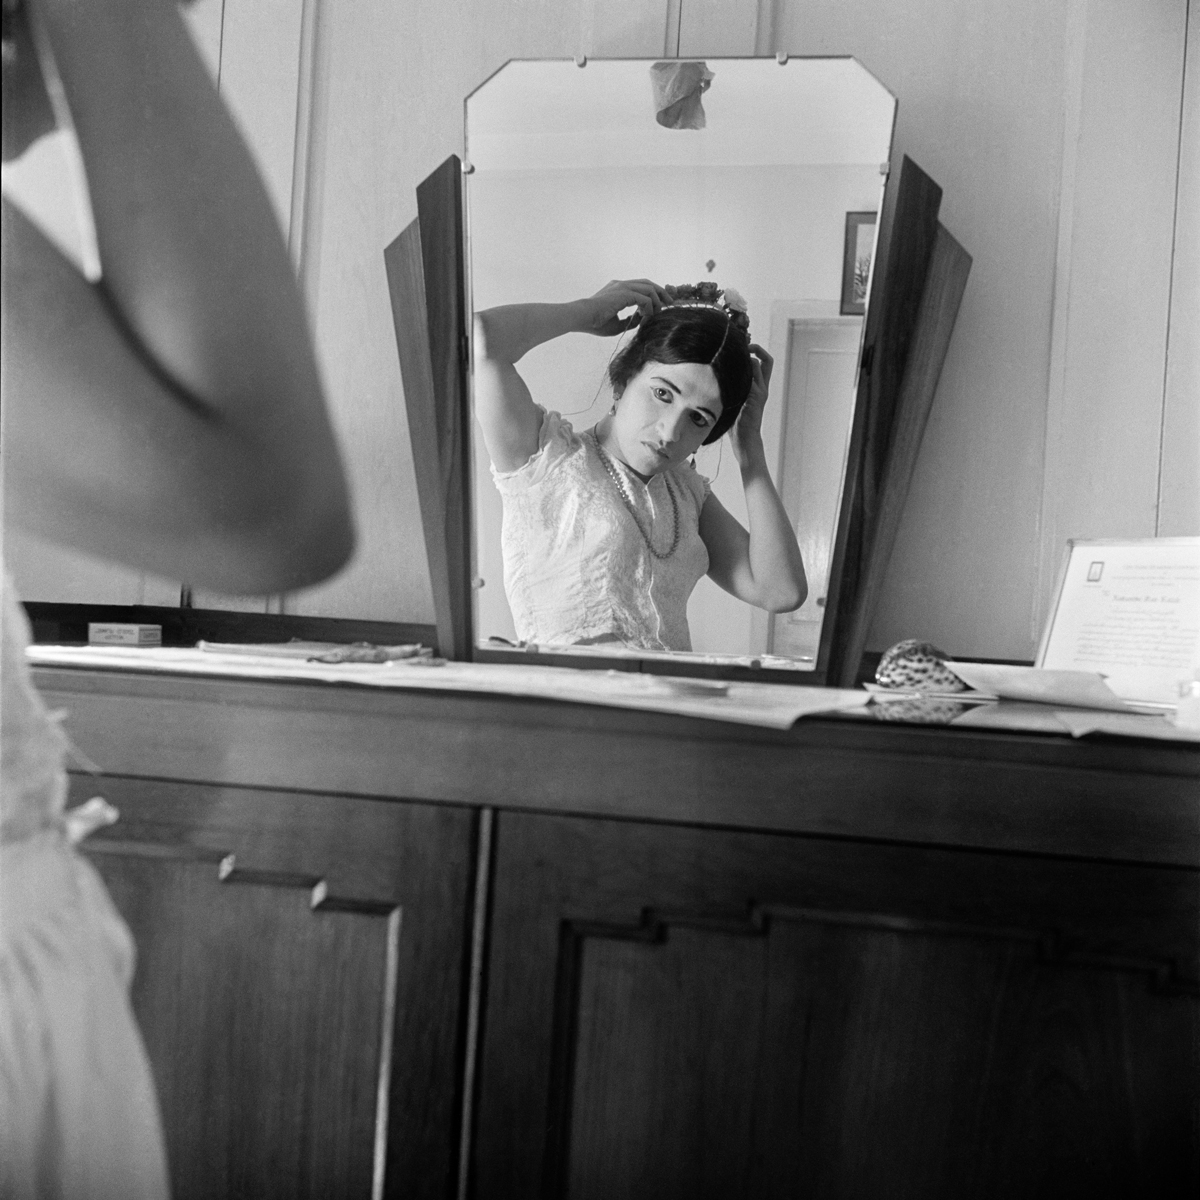 Theatre Artiste, Bombay, Early 1940s, Homai Vyarawalla. A woman is seen sat at a dressing table in the mirror fixing her hair